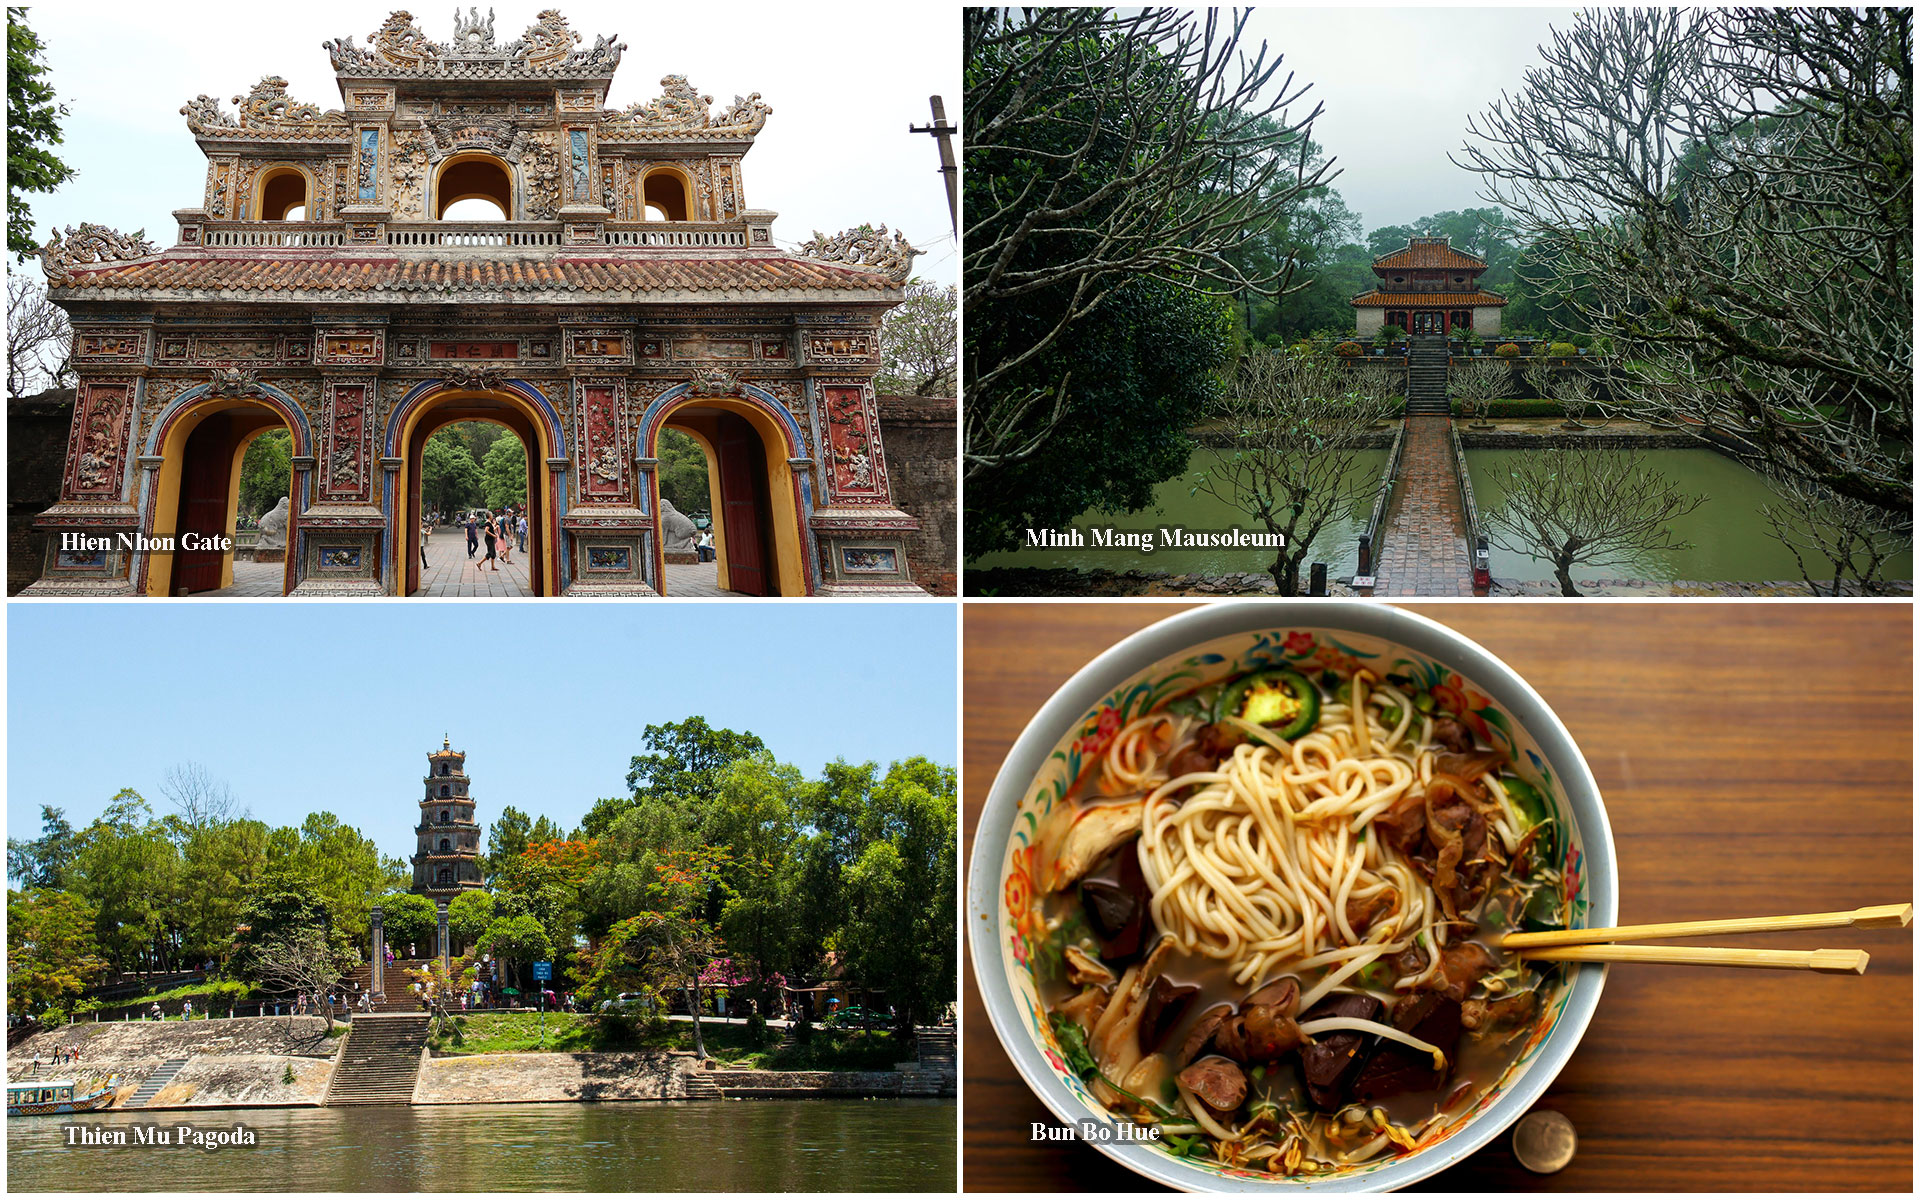 School trips in Vietnam - Hue